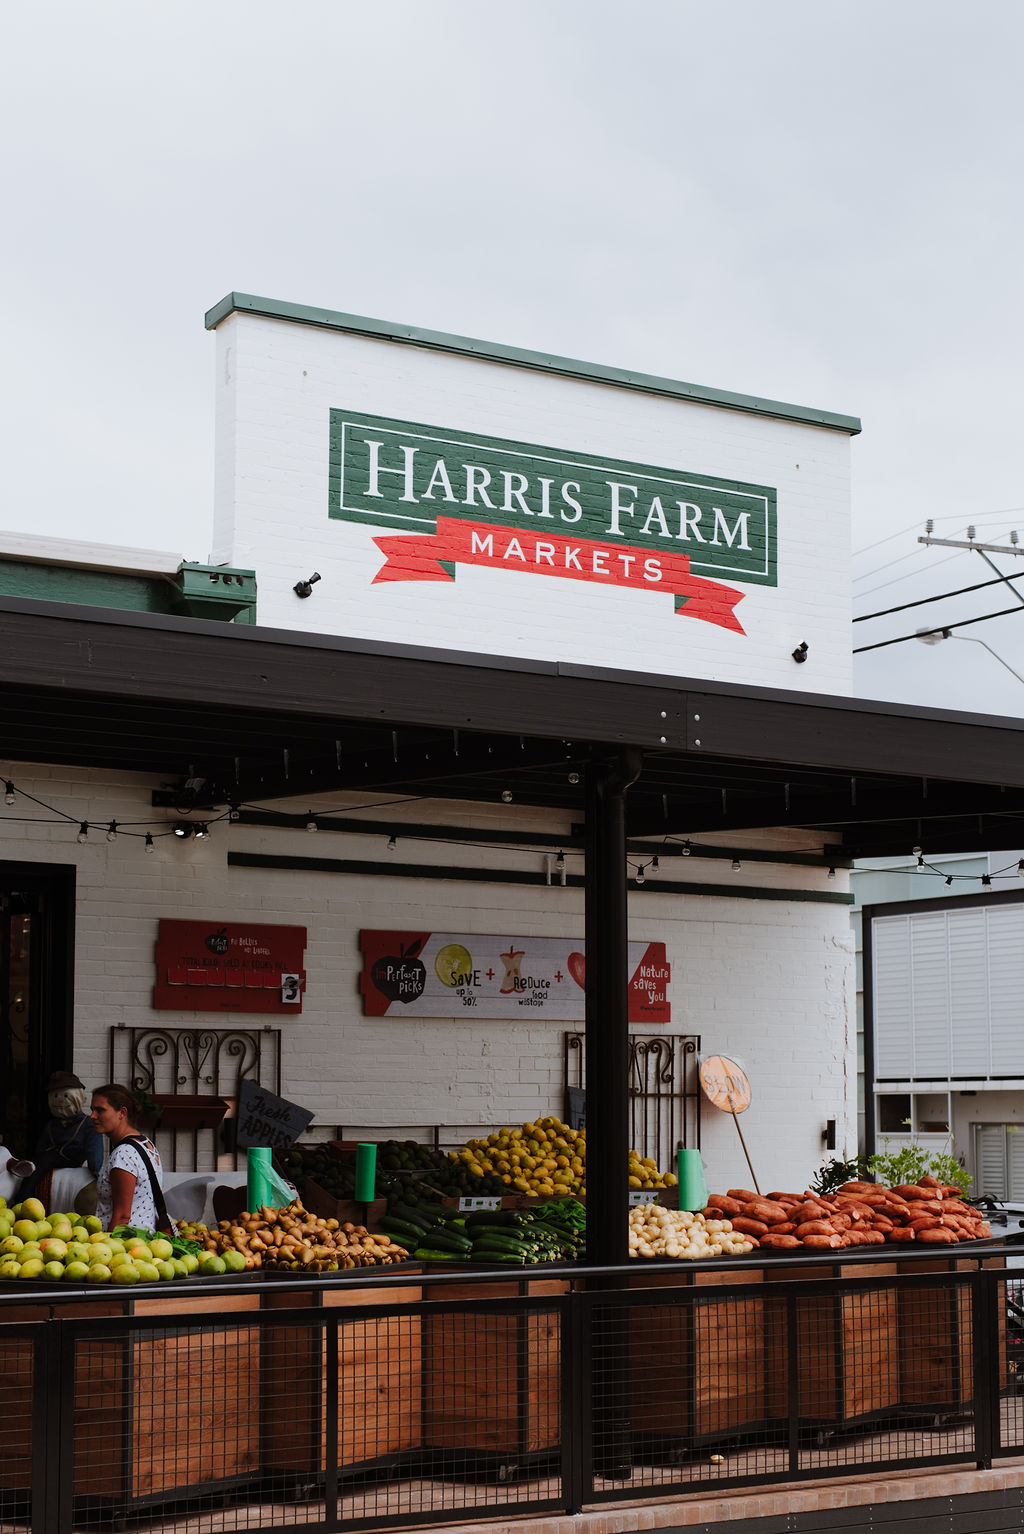 Harris-Farm-Markets-231018-227.jpg